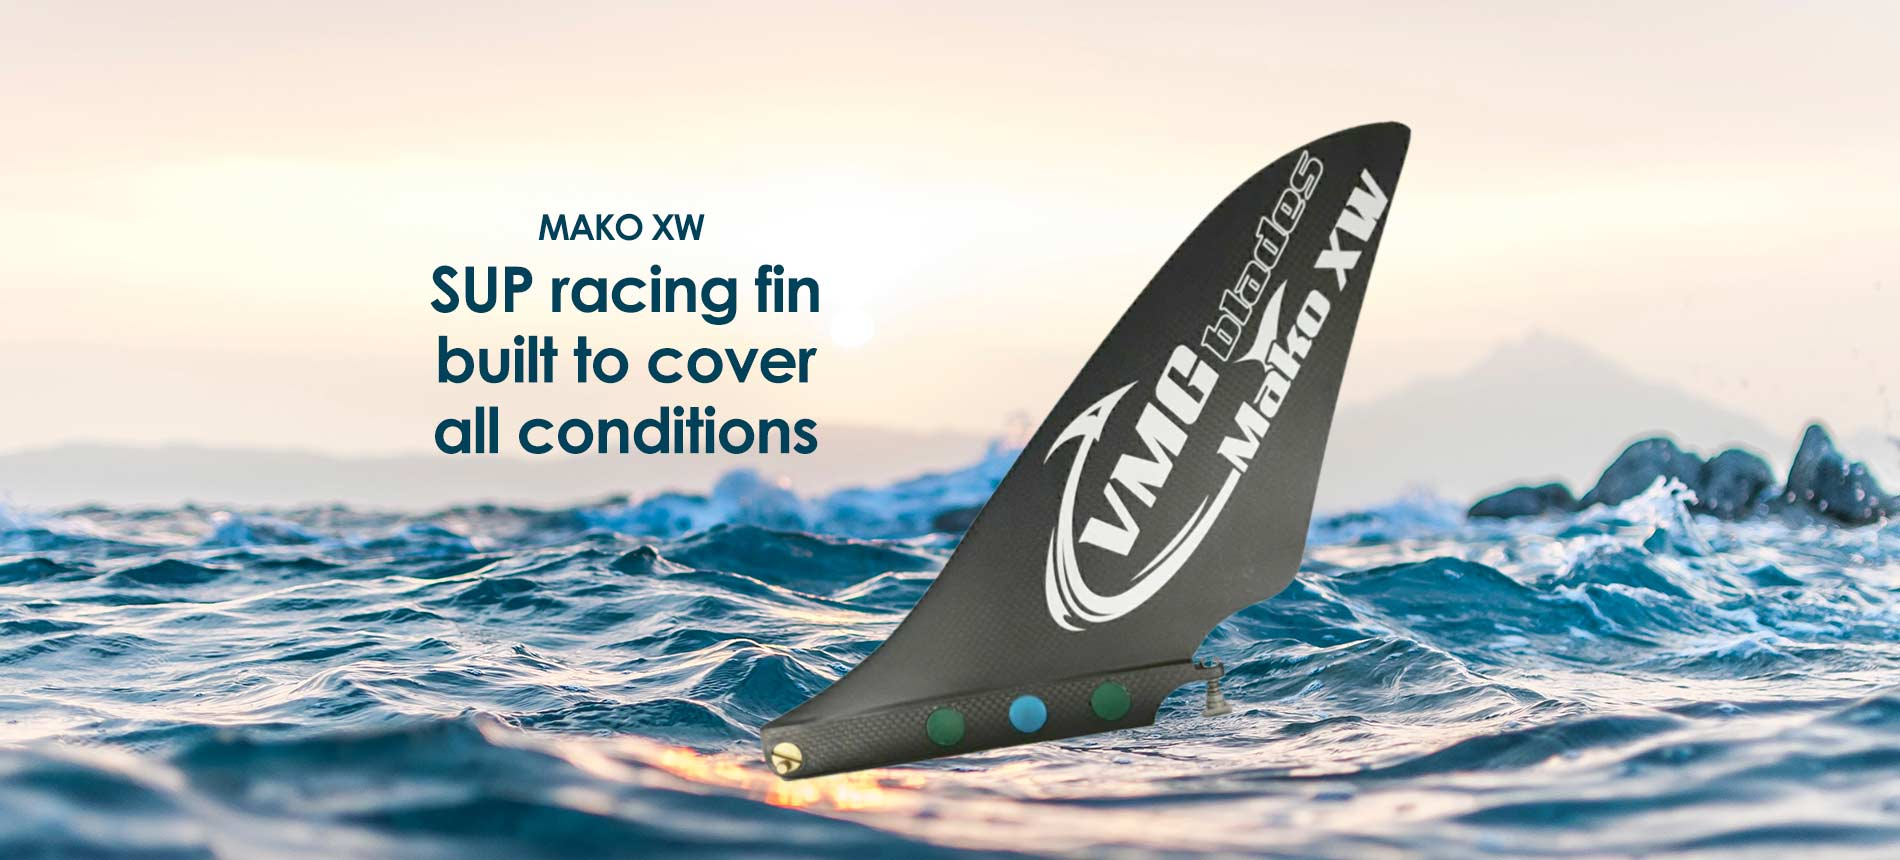 Mako XW SUP Fin by VMG blades